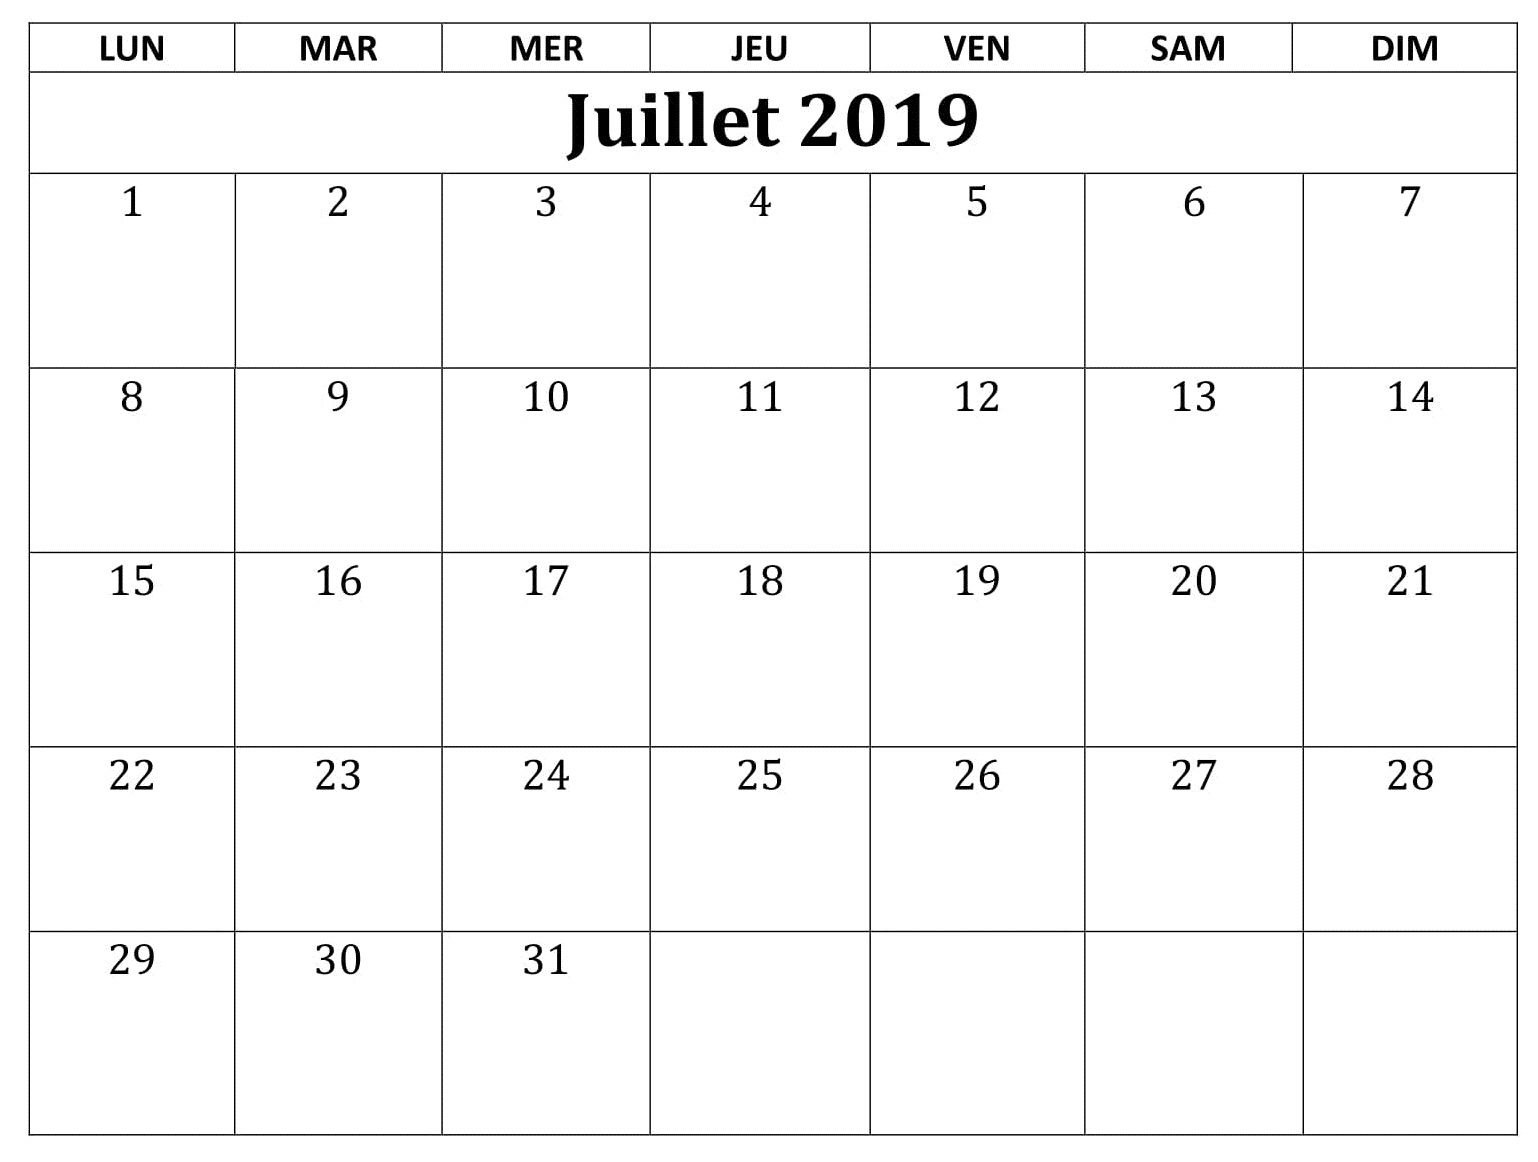 Calendrier Excell.Calendrier 2019 Juillet Excel Calendrier Juillet 2019 In